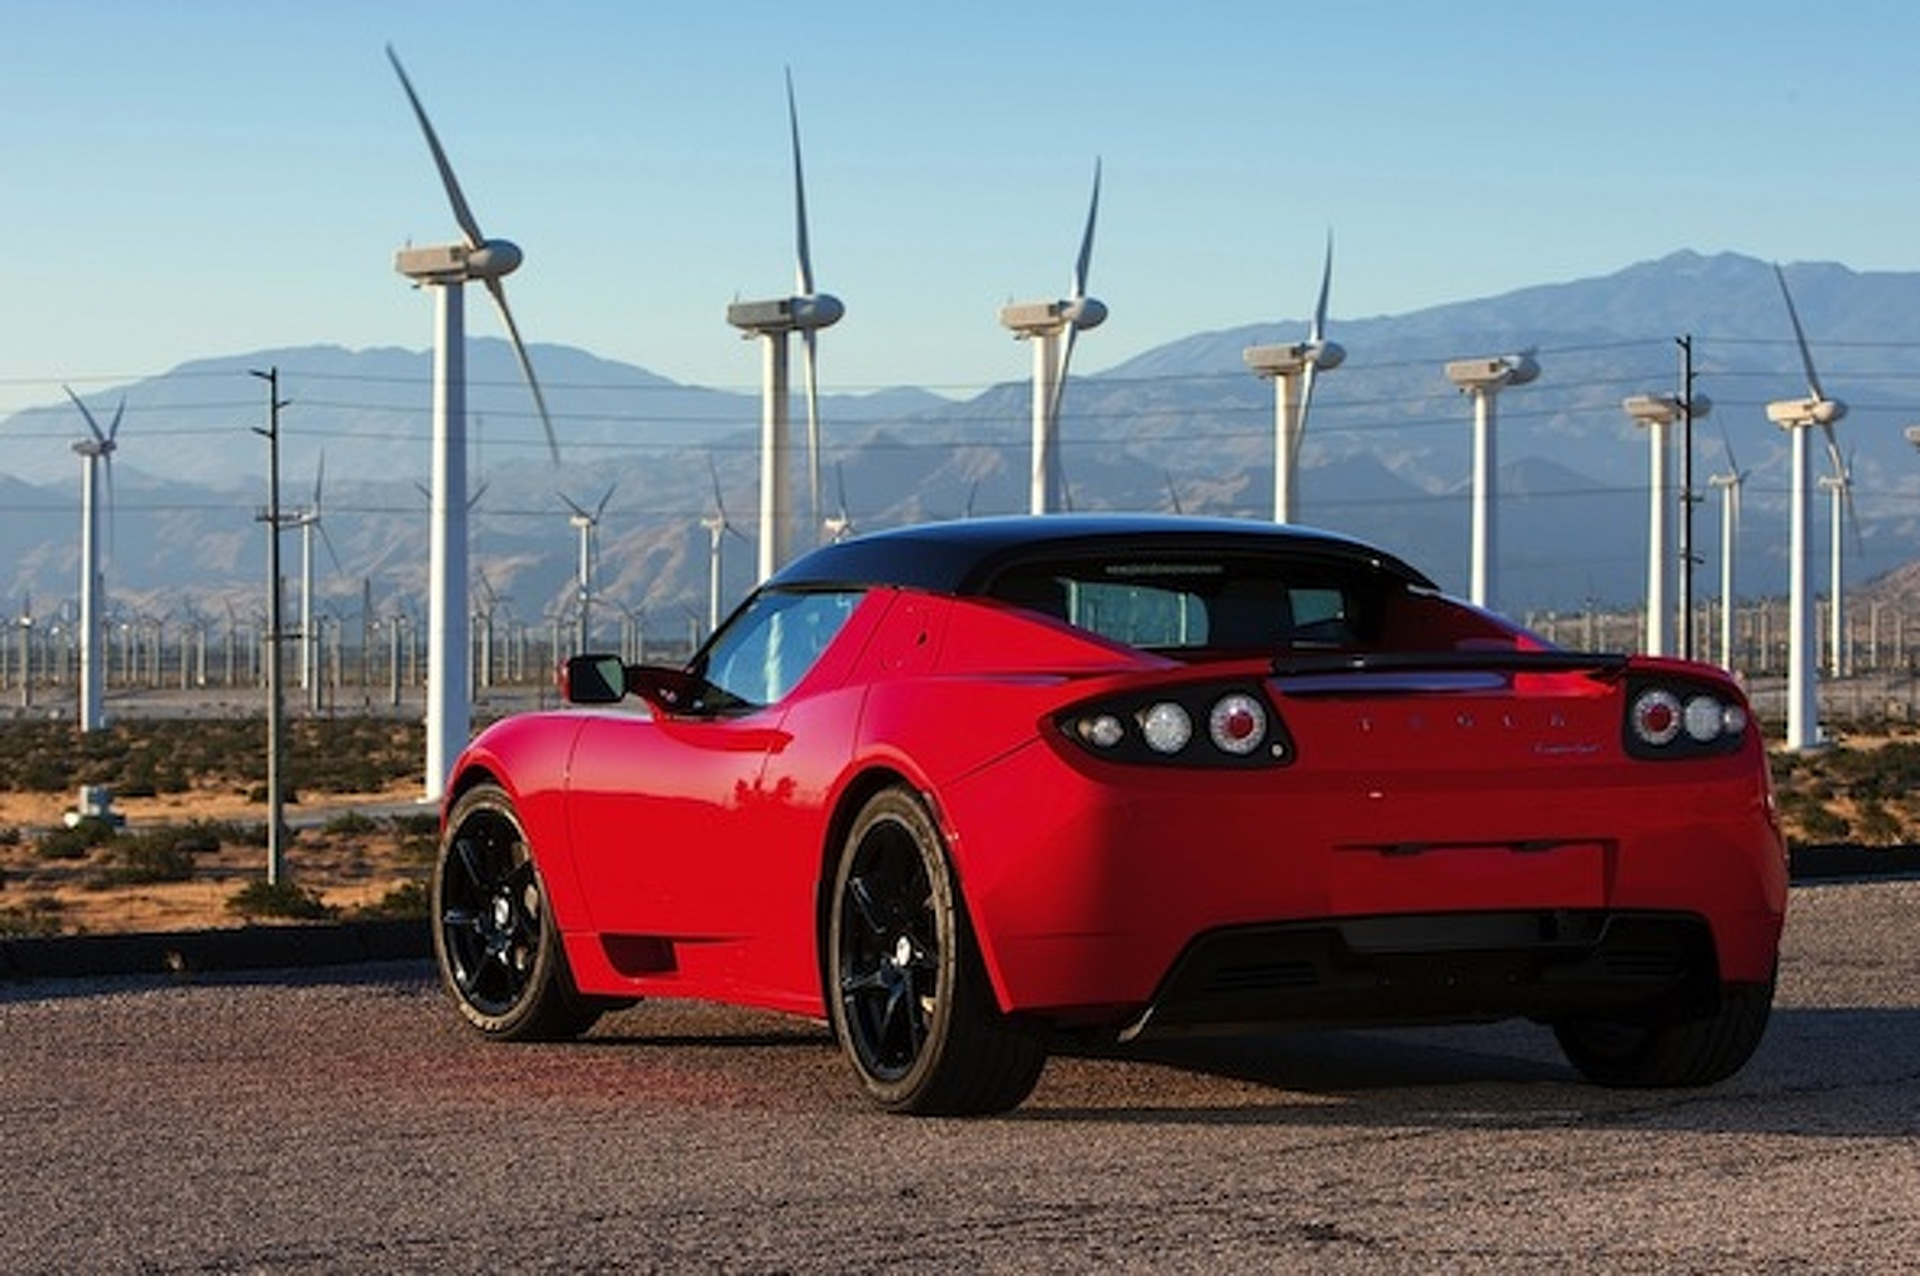 Next-Gen Tesla Roadster to Improve on Efficiency, Power